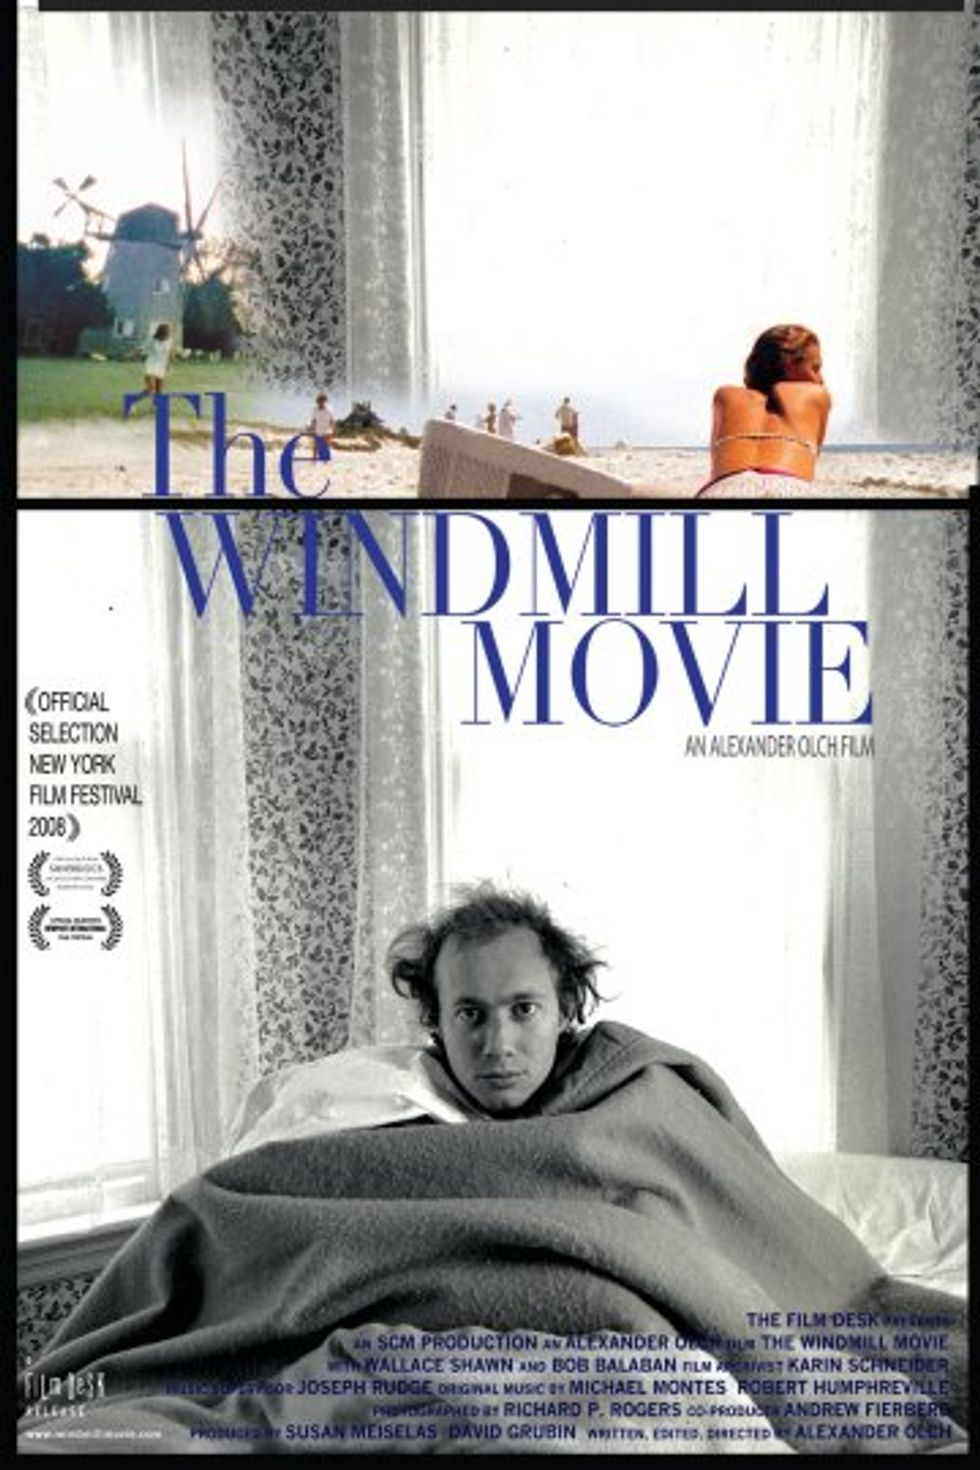 Alexander Olch's The Windmill Movie